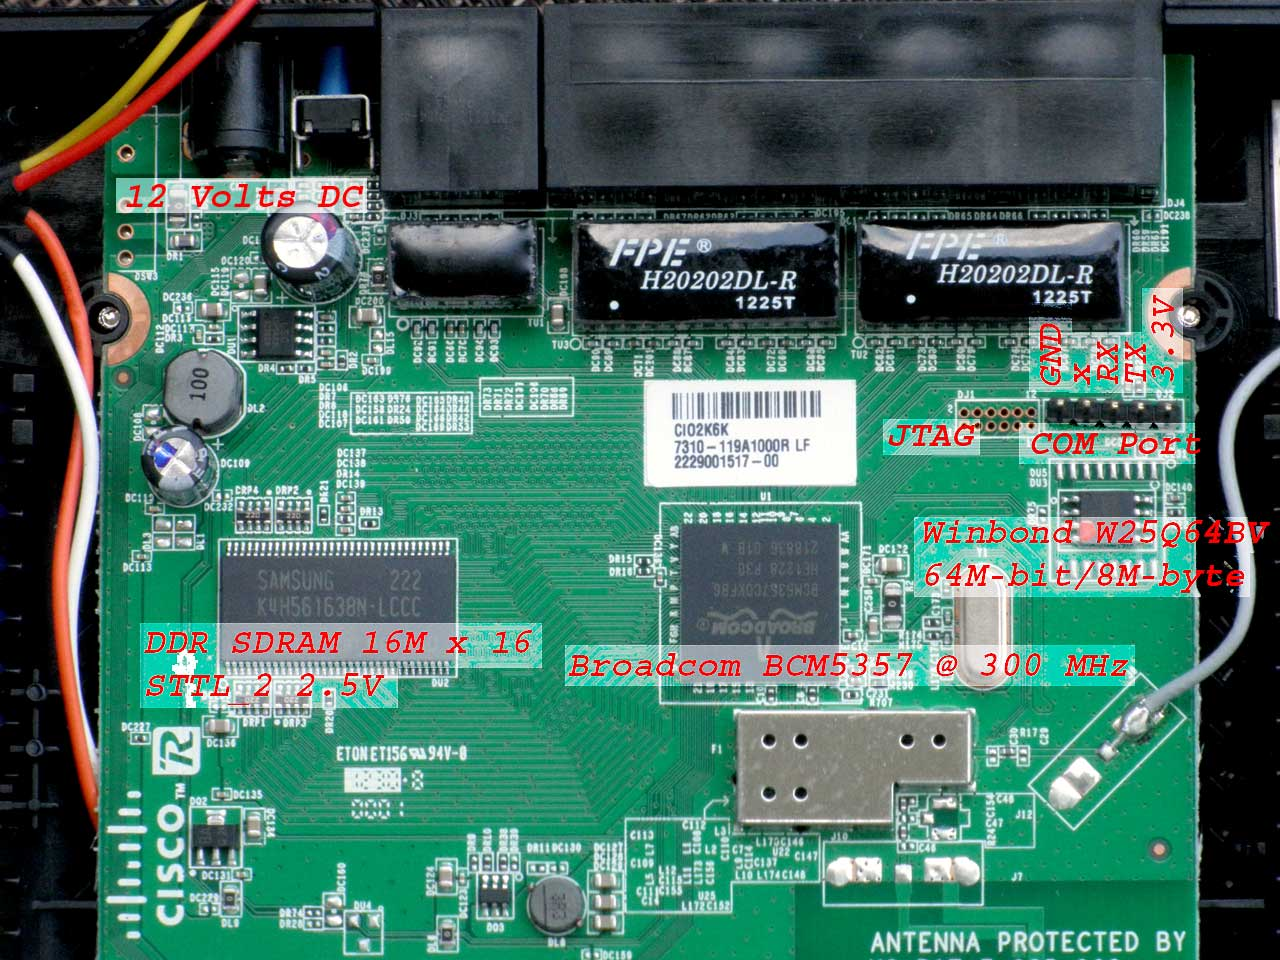 Board, Linksys E1200, with IC and Ports